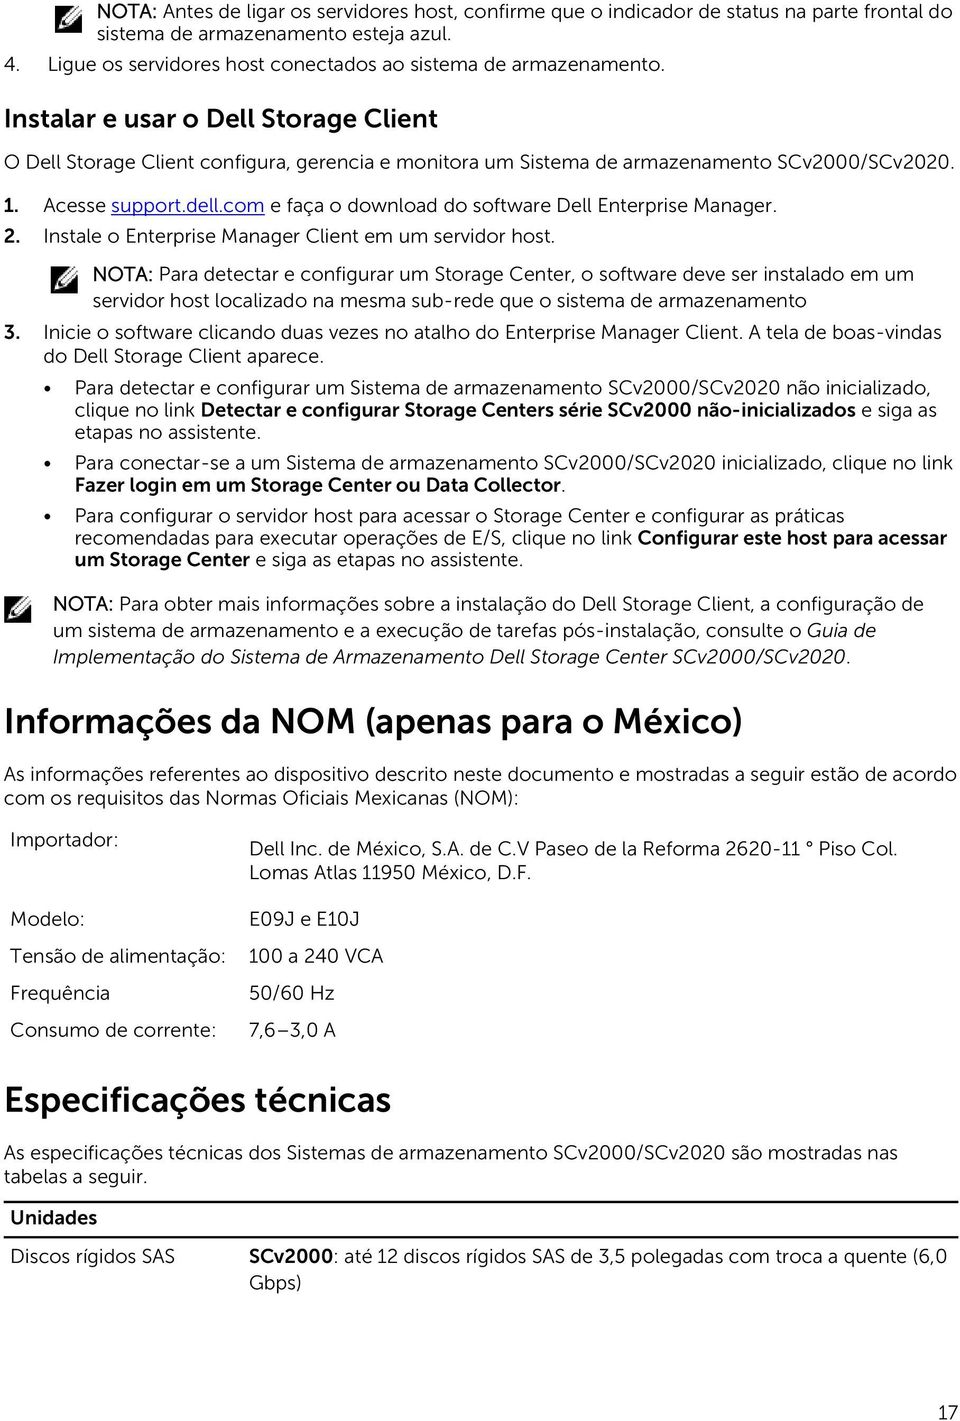 1. Acesse support.dell.com e faça o download do software Dell Enterprise Manager. 2. Instale o Enterprise Manager Client em um servidor host.